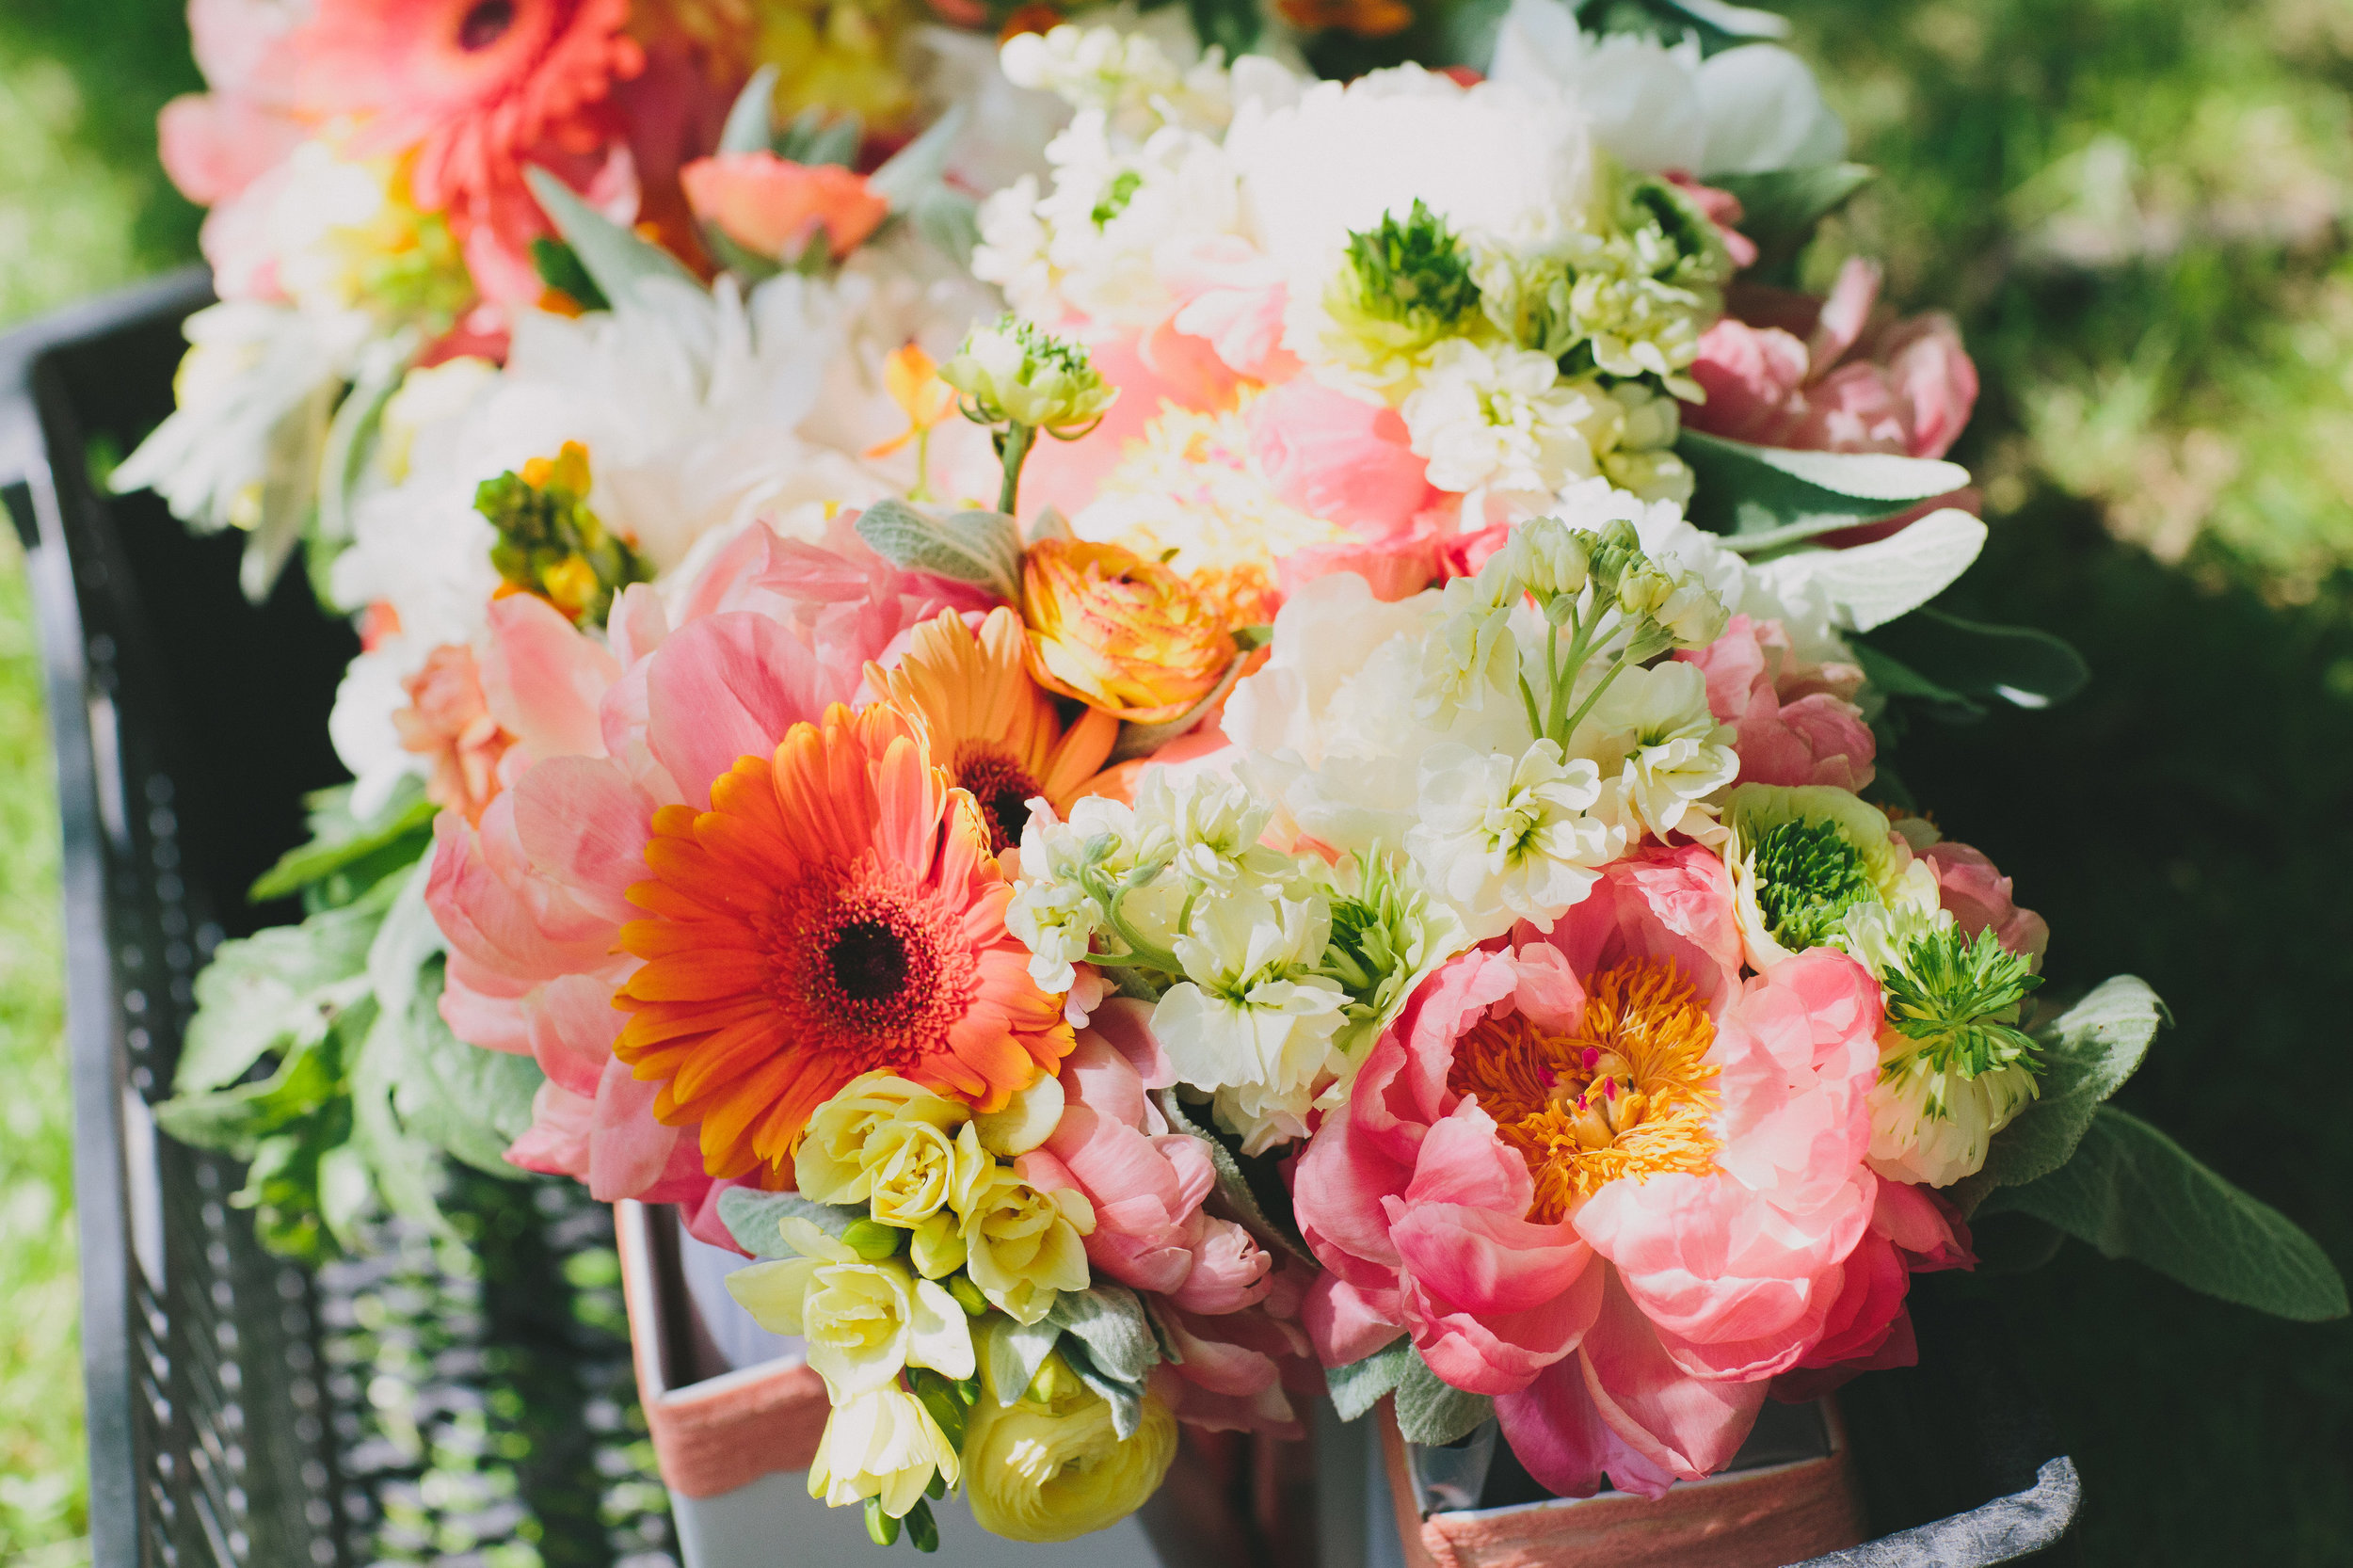 Finding flowers for your wedding – how to avoid a DIY disaster